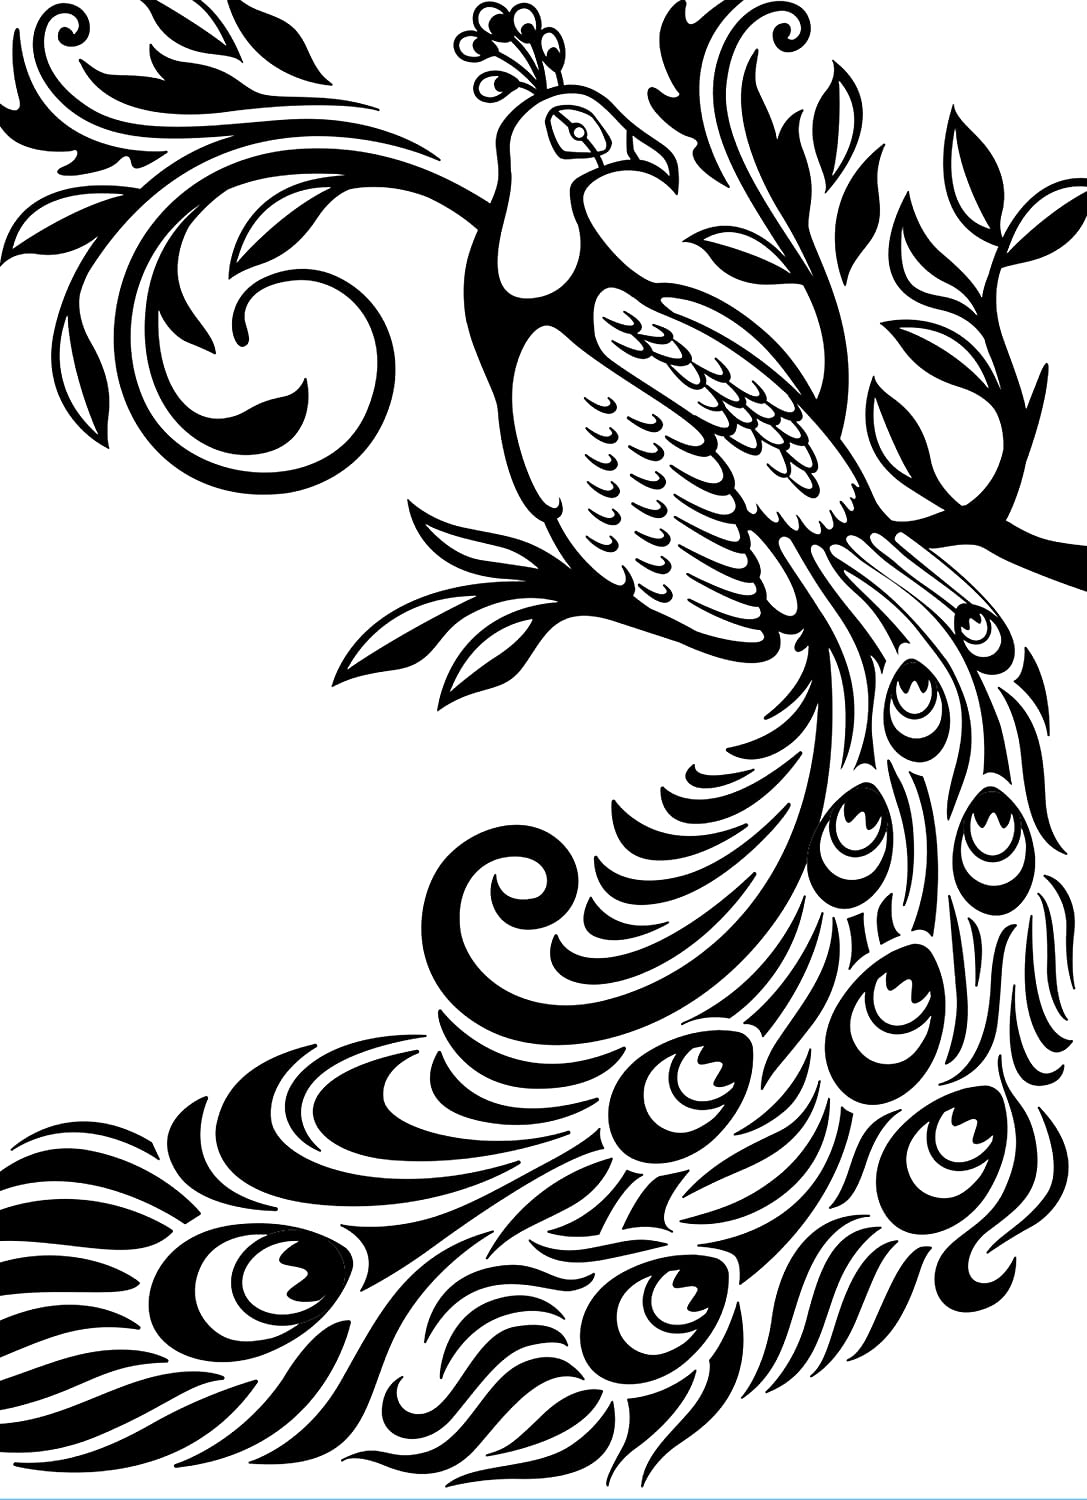 Darice EB12-19127 Embossing Folder, 4.25 by 5.75-Inch, Peacock